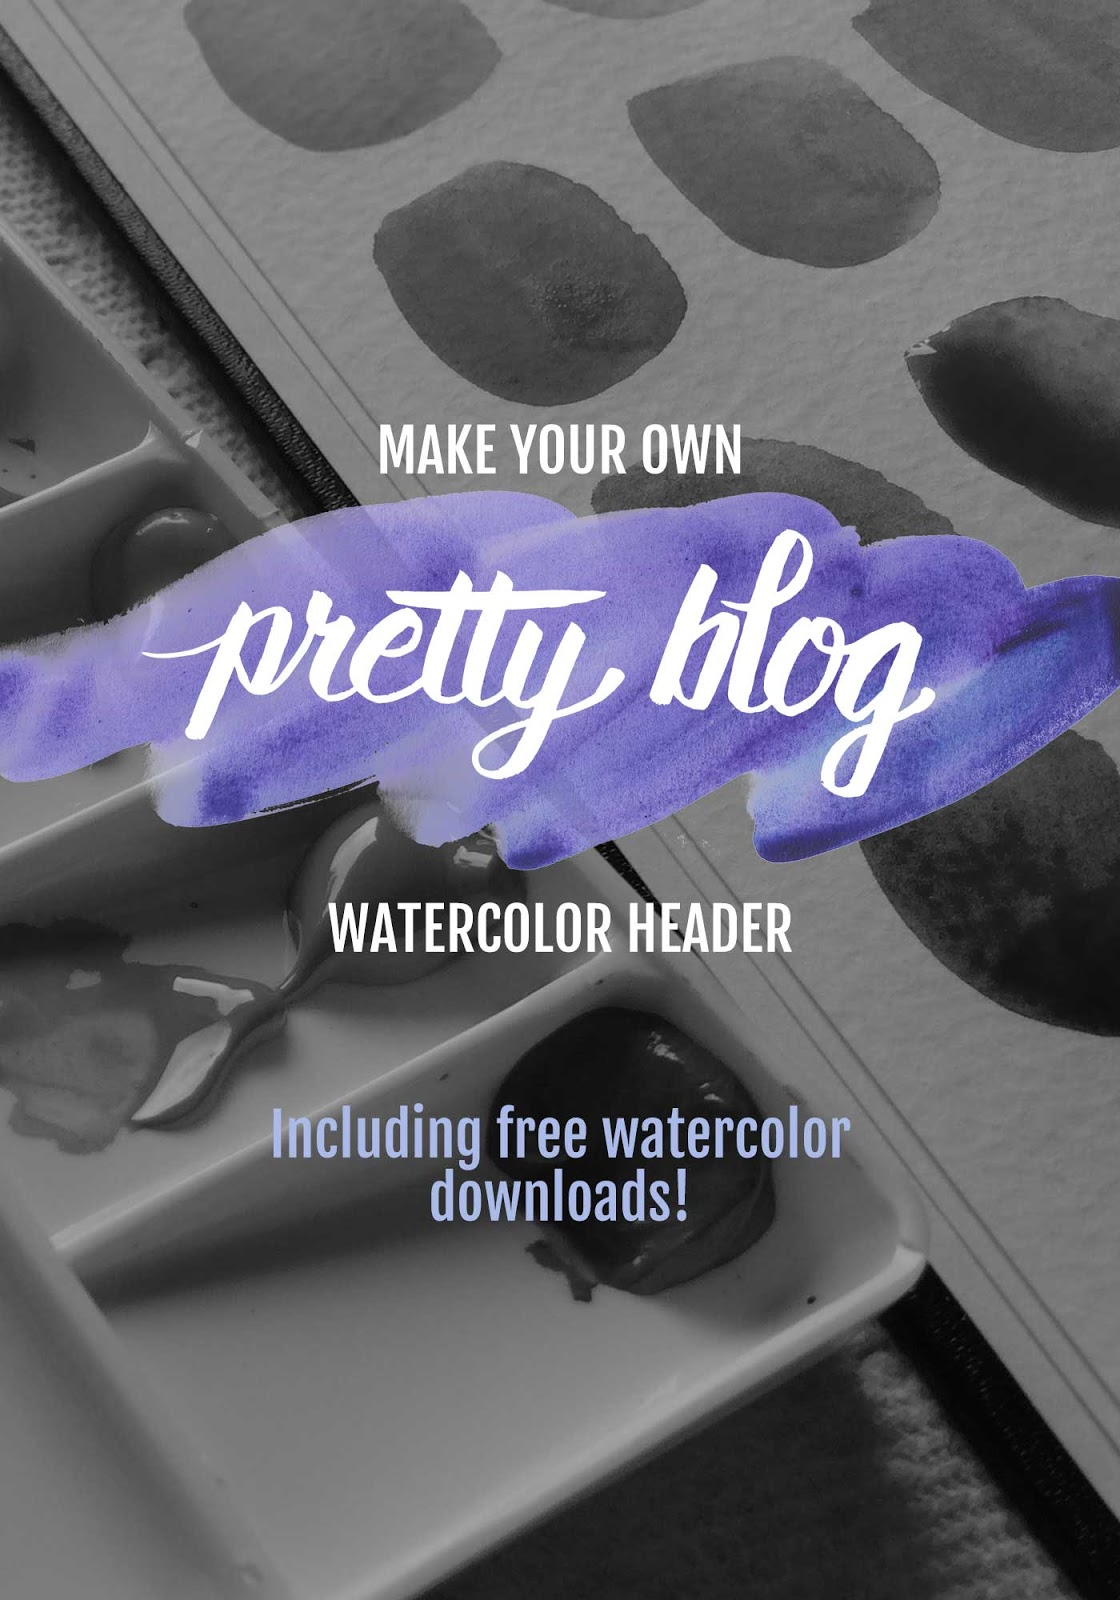 Learn how to make your own pretty blog watercolor header from start to finish - Includes downloadable freebies!